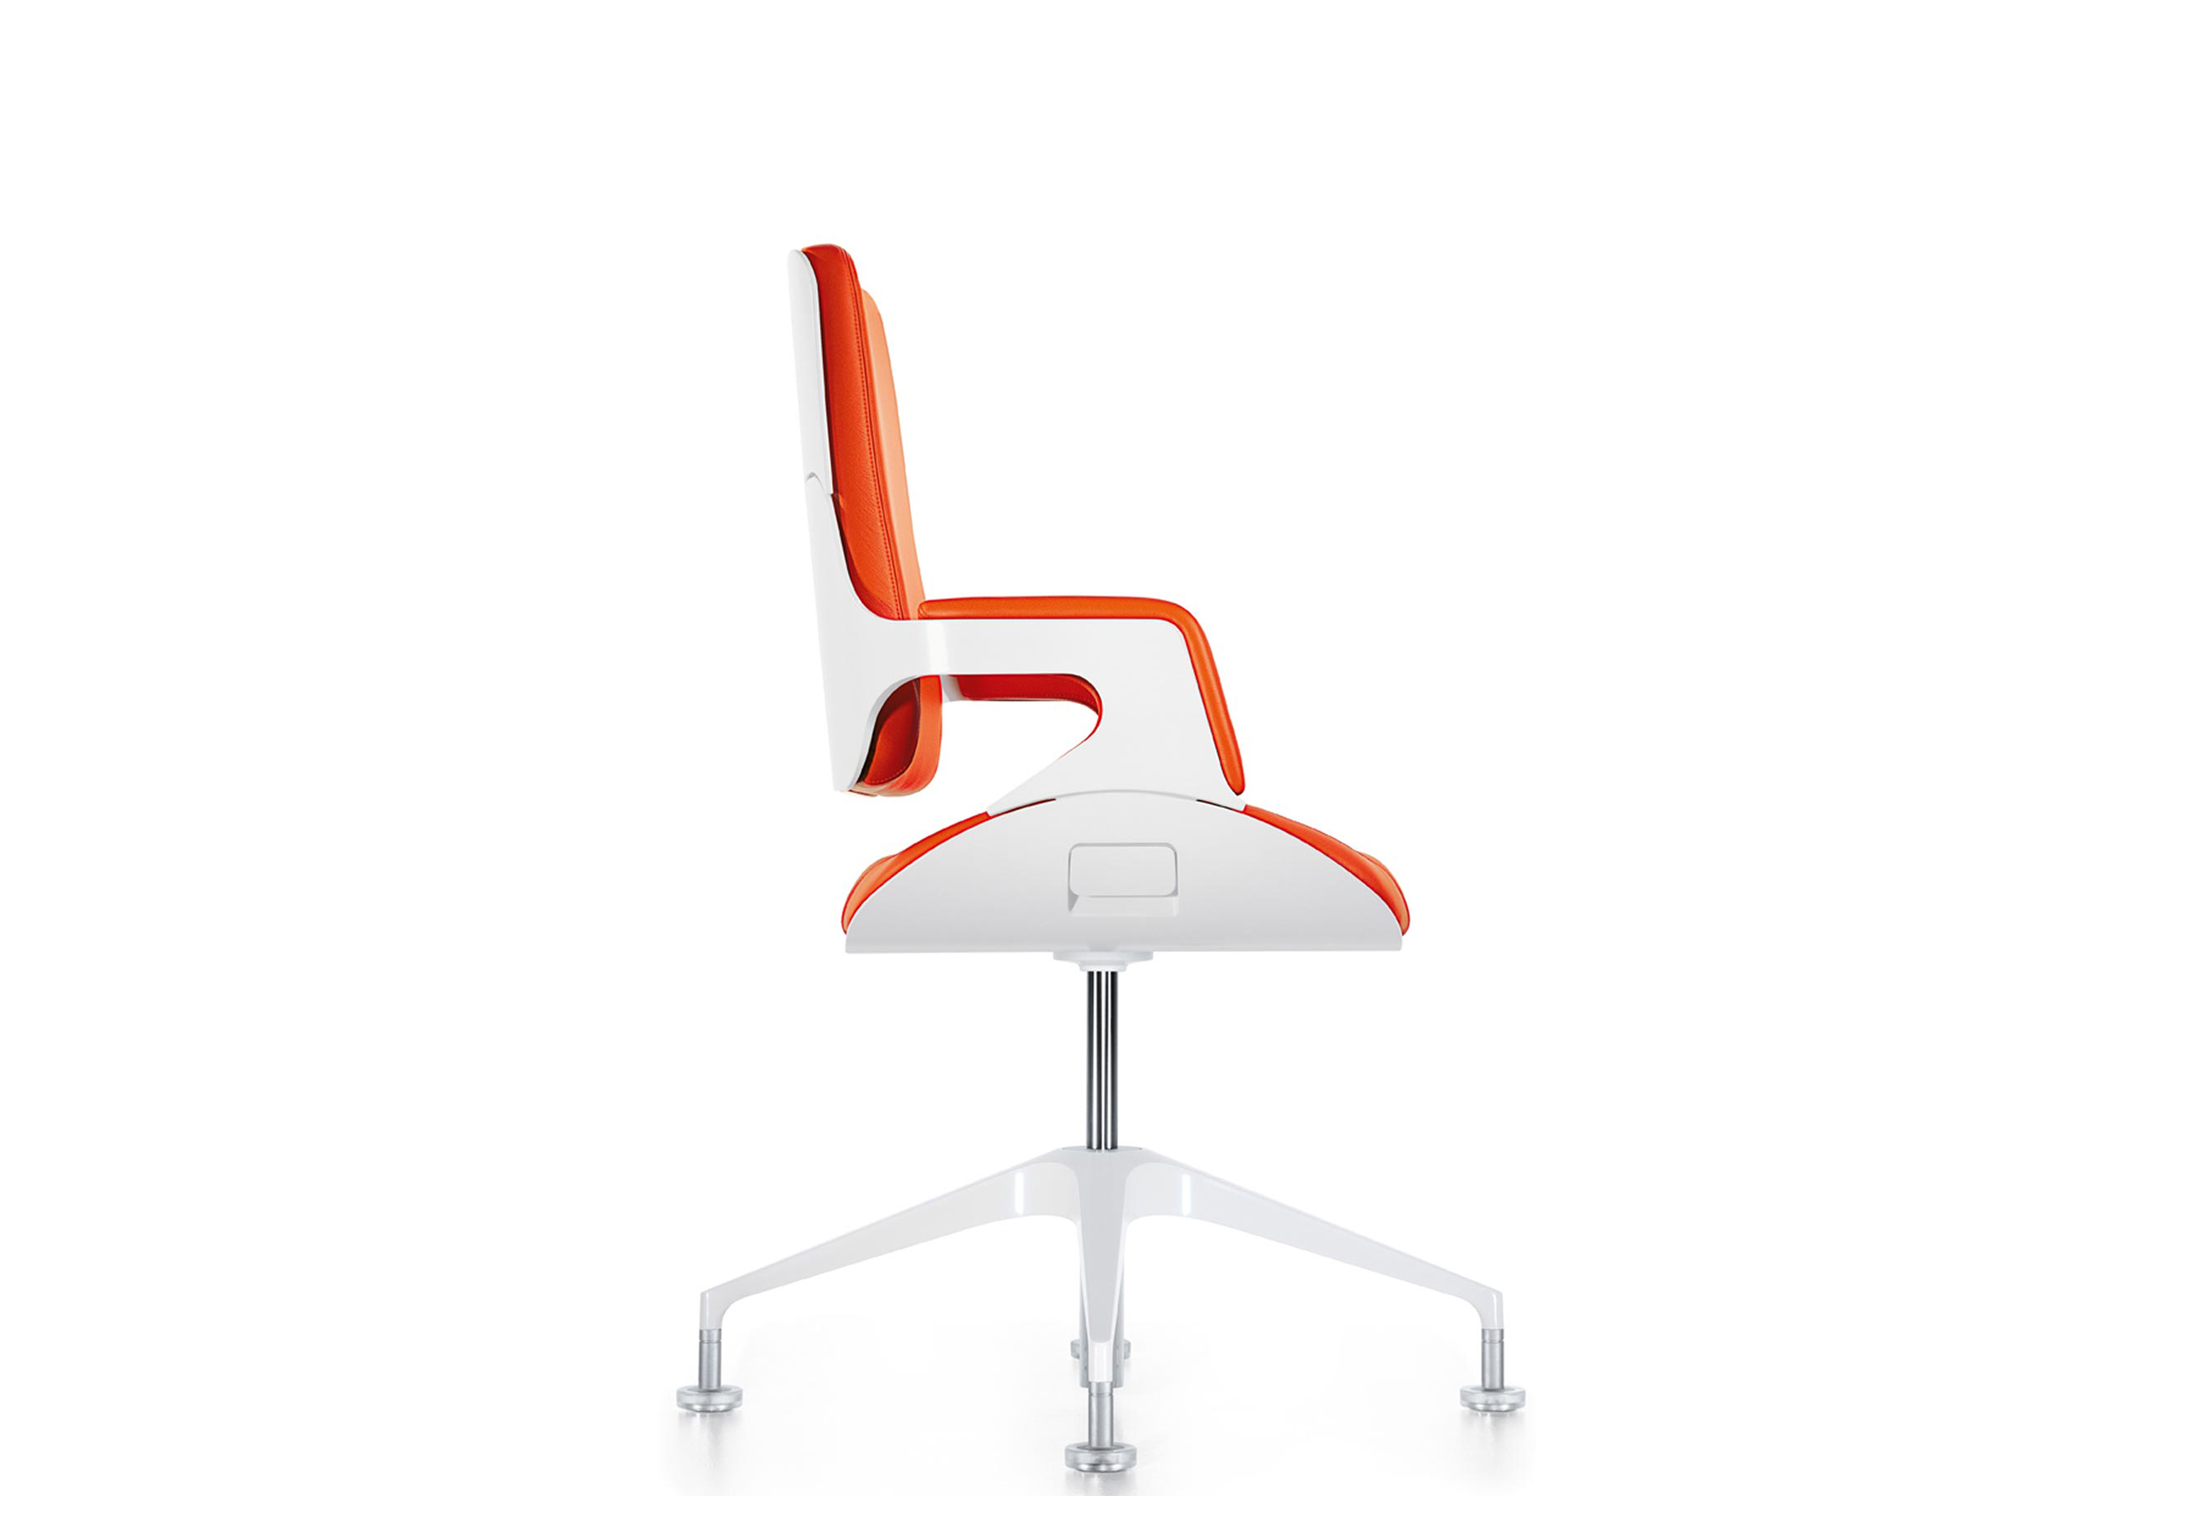 Silver conference chair 151S by Interstuhl | STYLEPARK